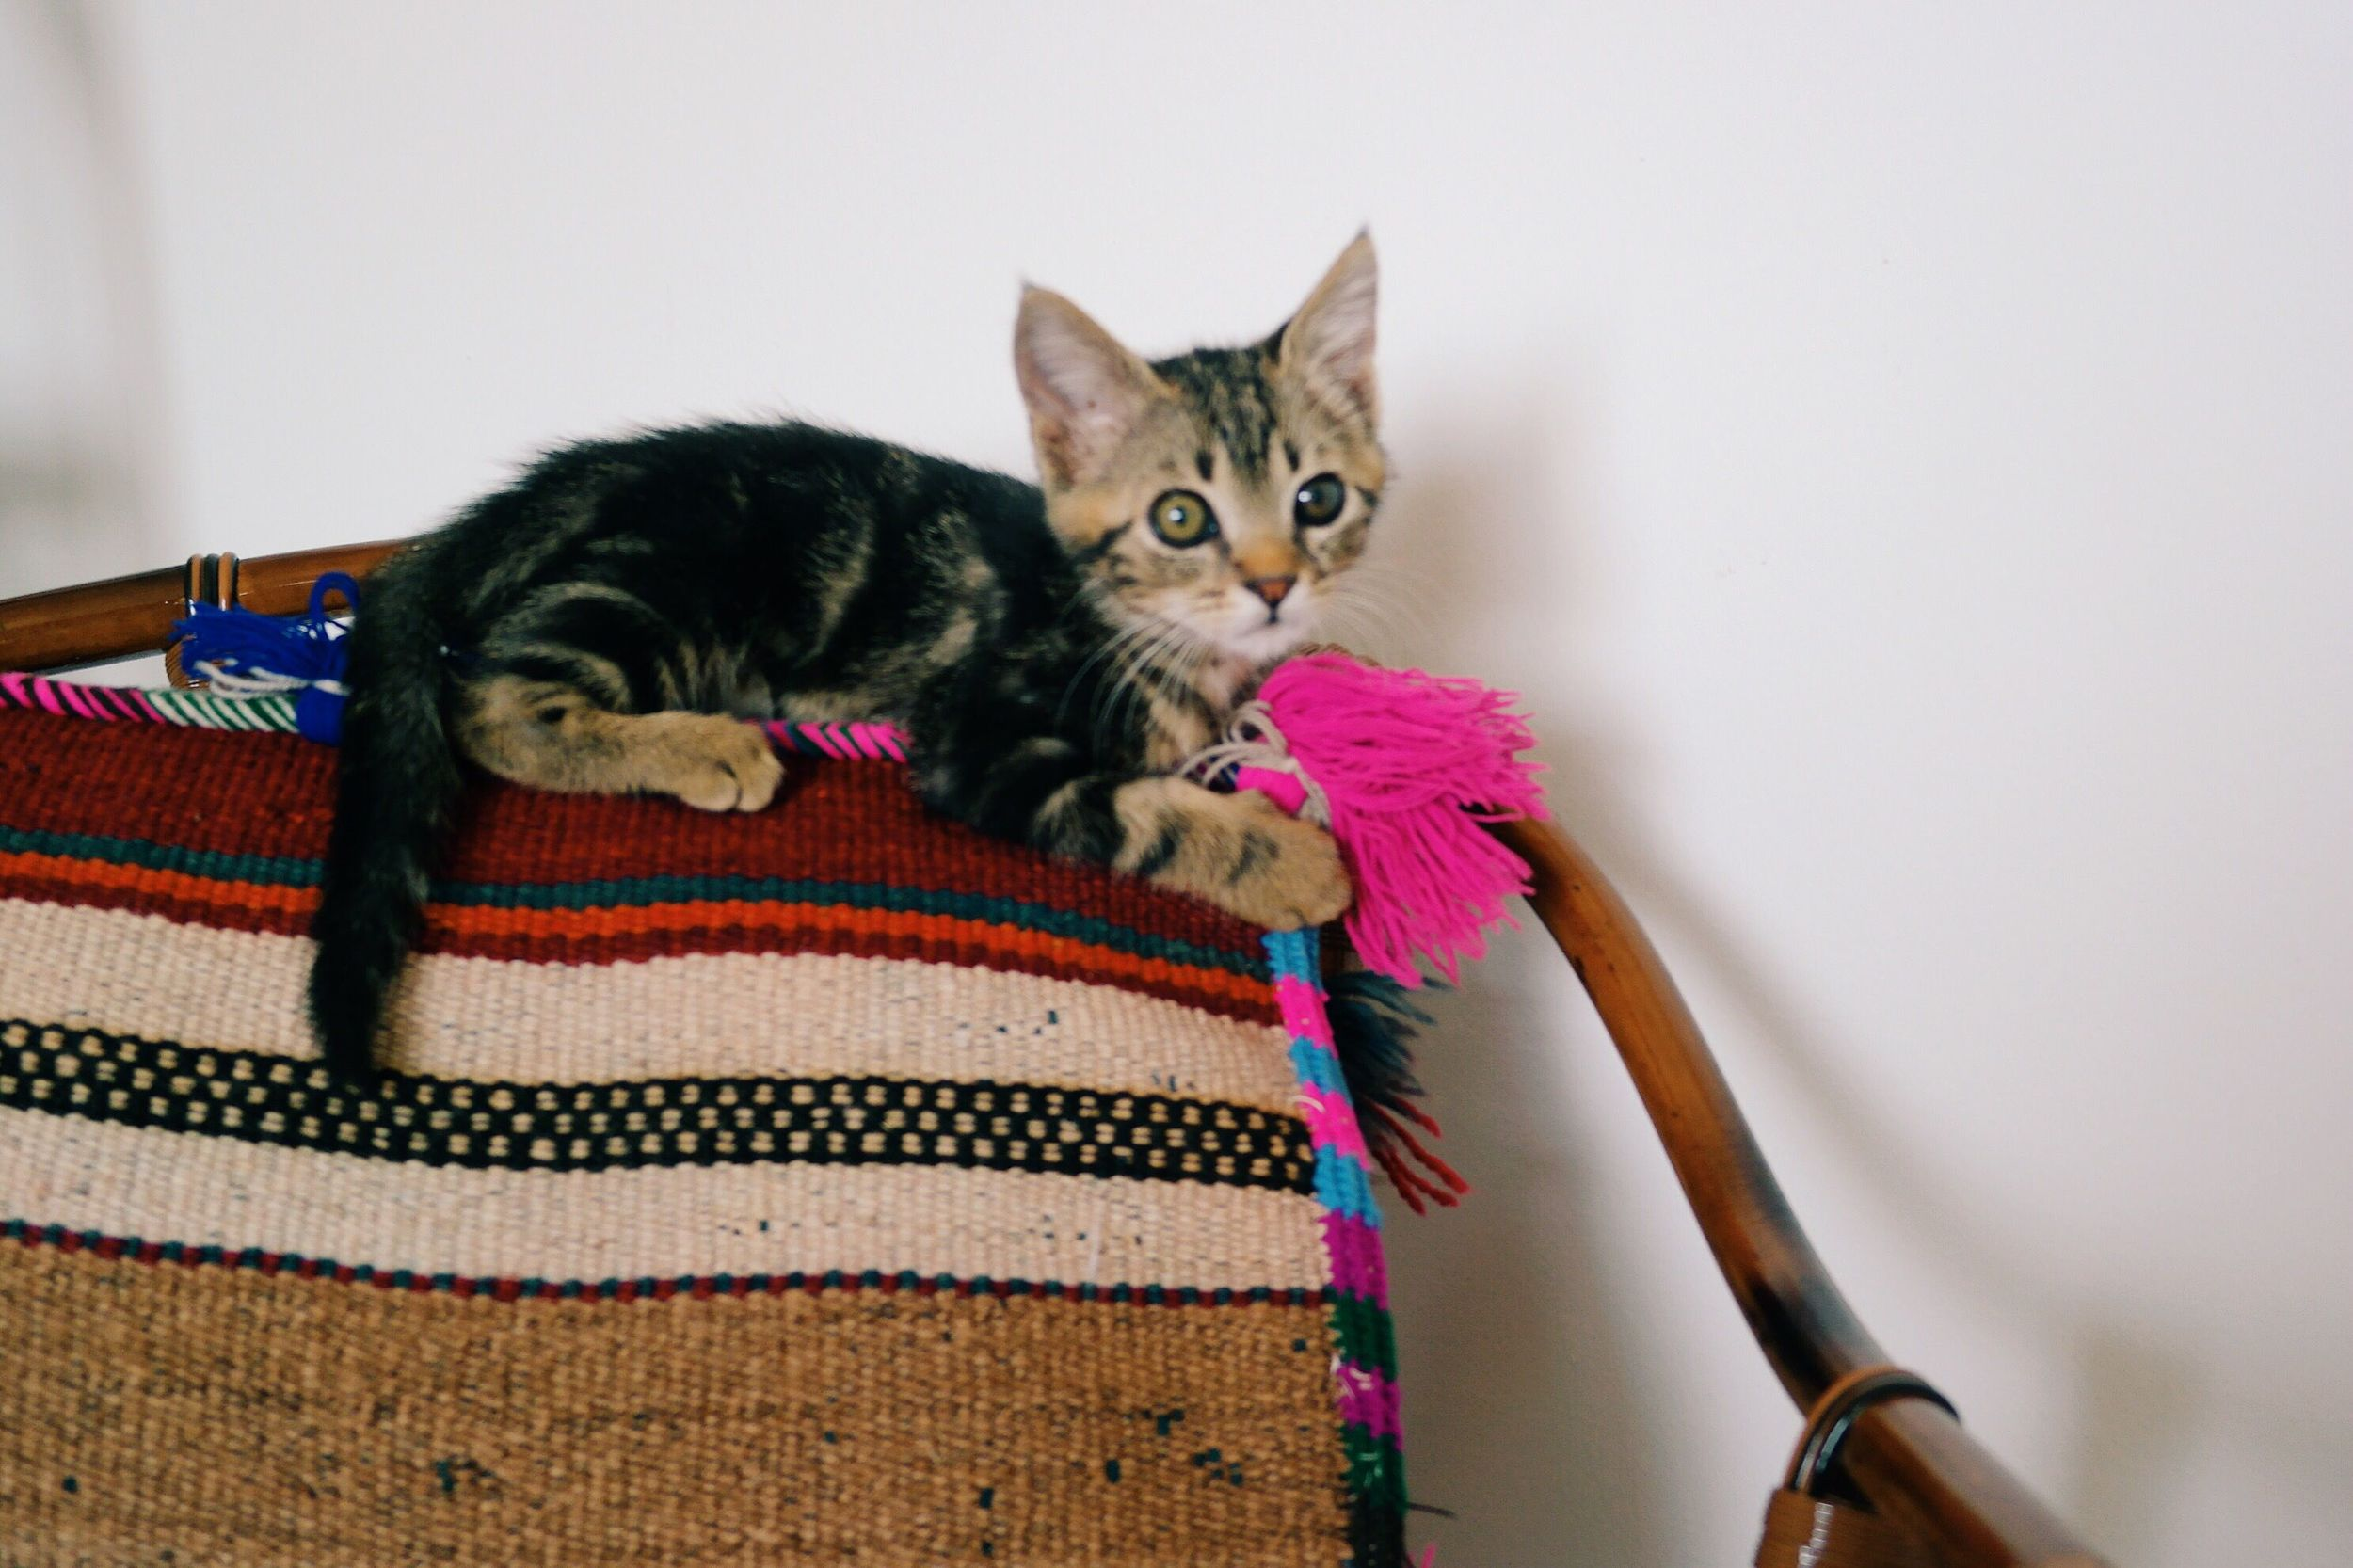 Here is a photo of Mozi the kitty; it's hard to believe he used to be so tiny!